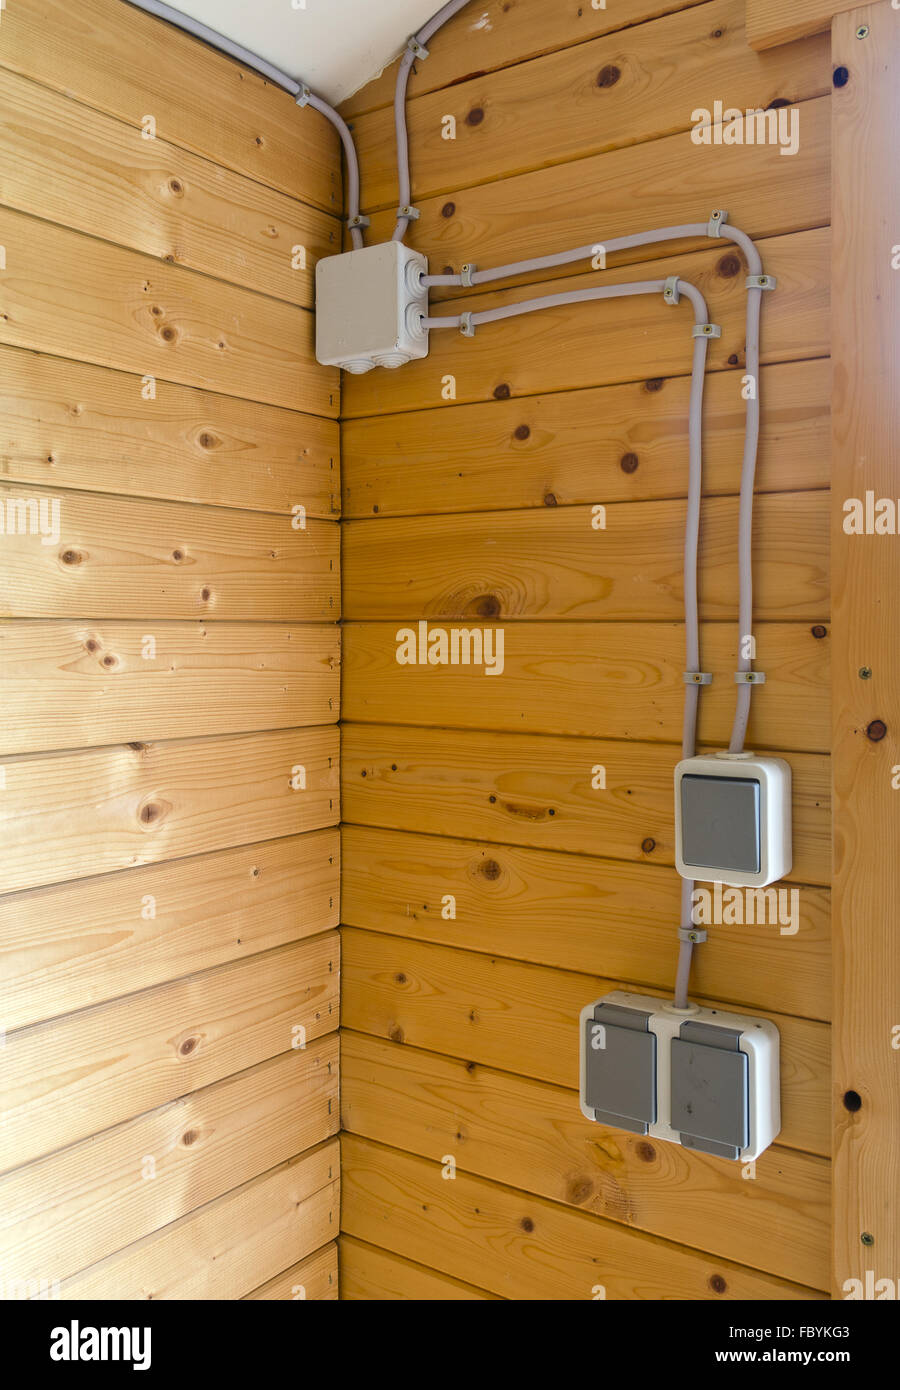 Electrical Installation In A Wooden House Stock Photo 93421107 Alamy Wiring